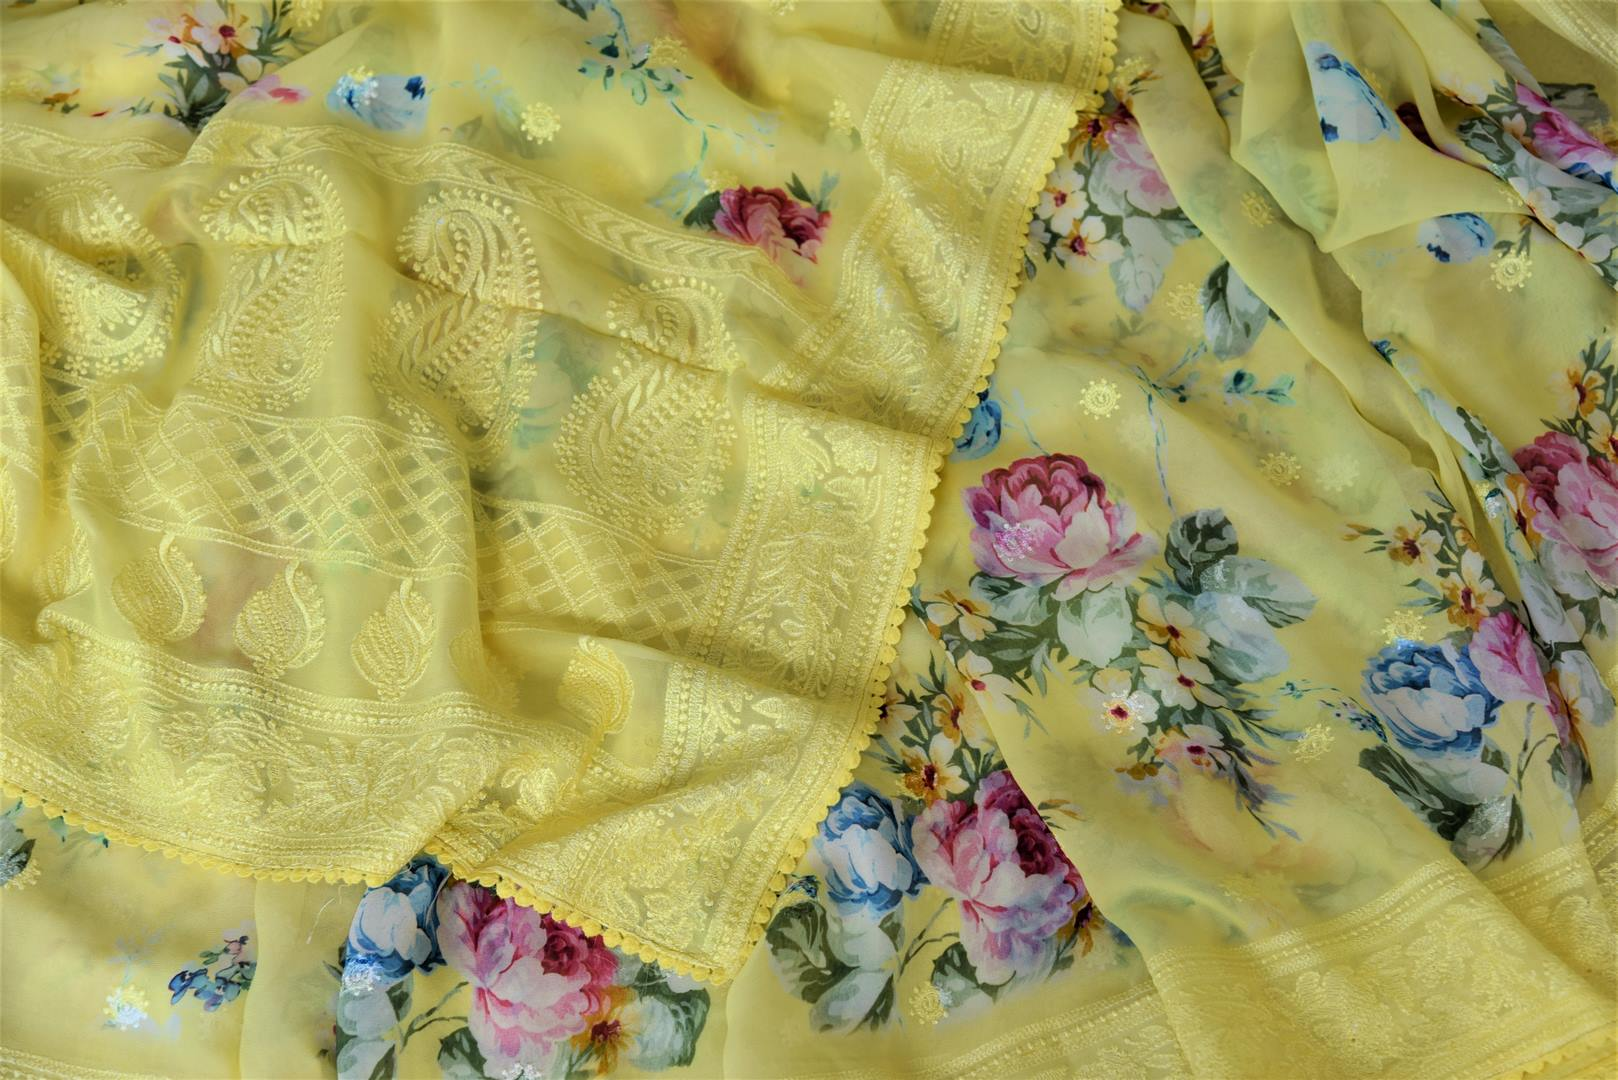 Buy beautiful lemon yellow floral georgette saree online in USA with embroidered border. Be the talk of the occasions in exquisite linen sarees, embroidered saris from Pure Elegance Indian fashion store in USA. -details